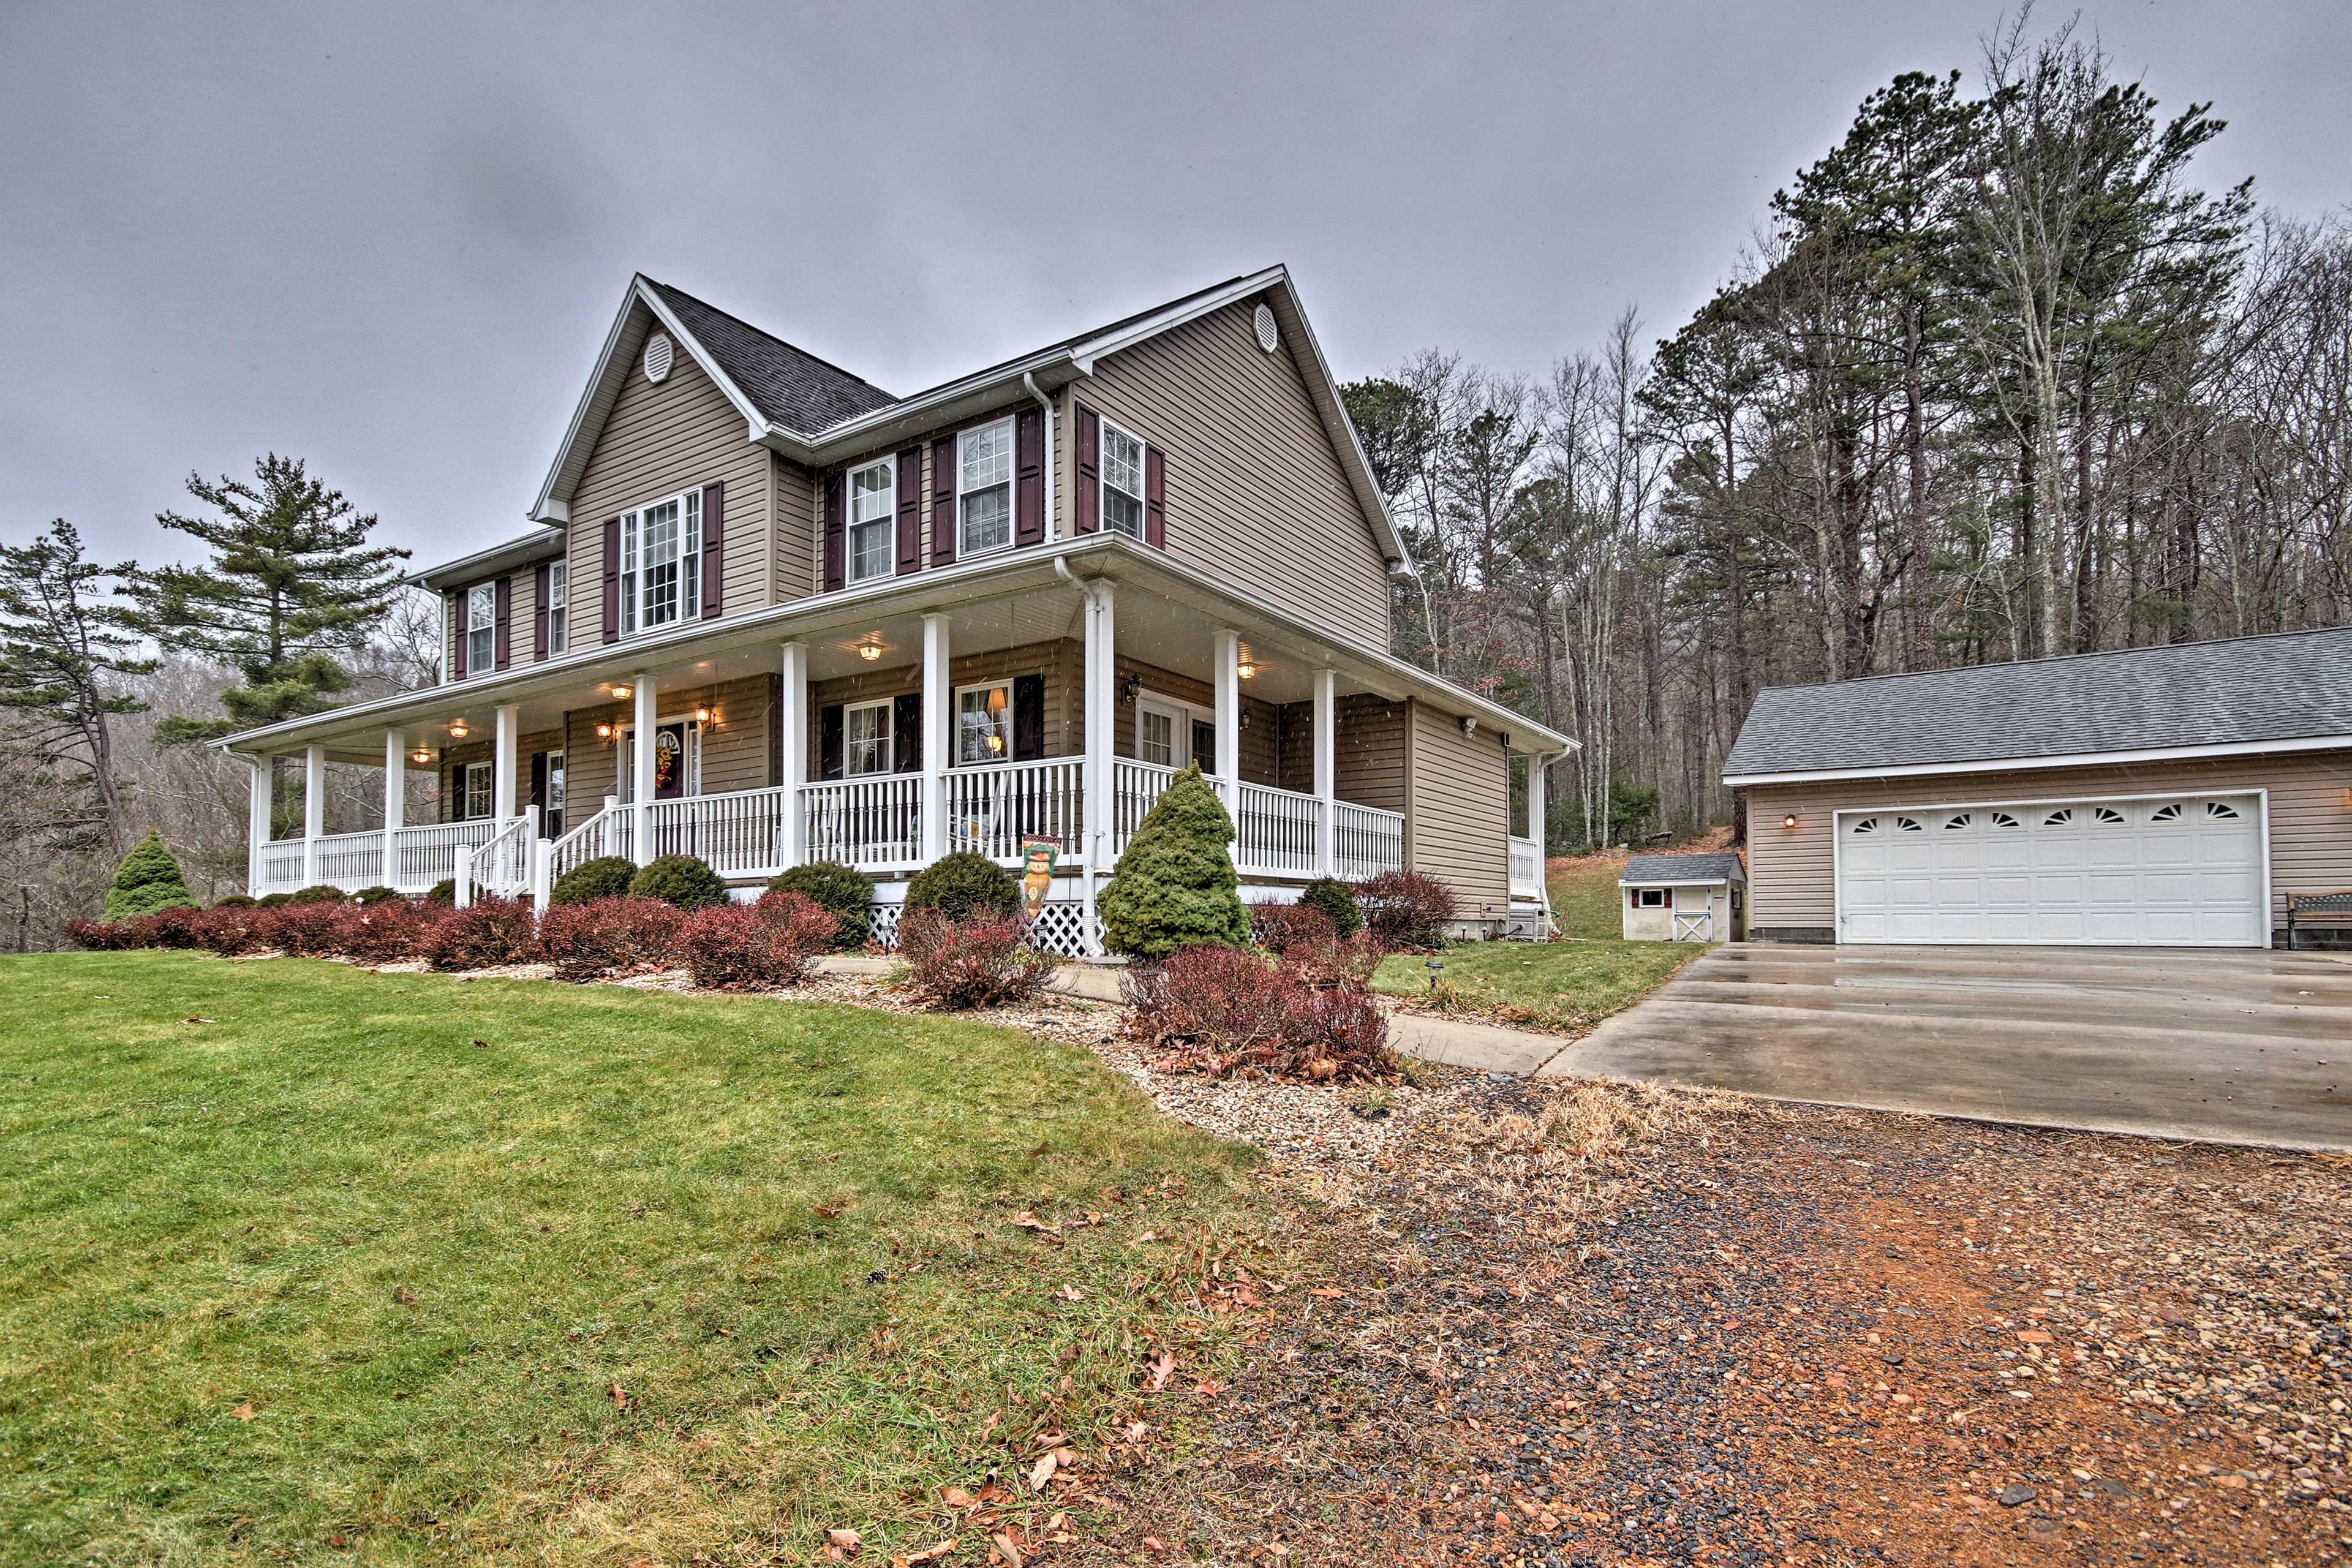 This Circleville home is perfect for your next West Virginia getaway!